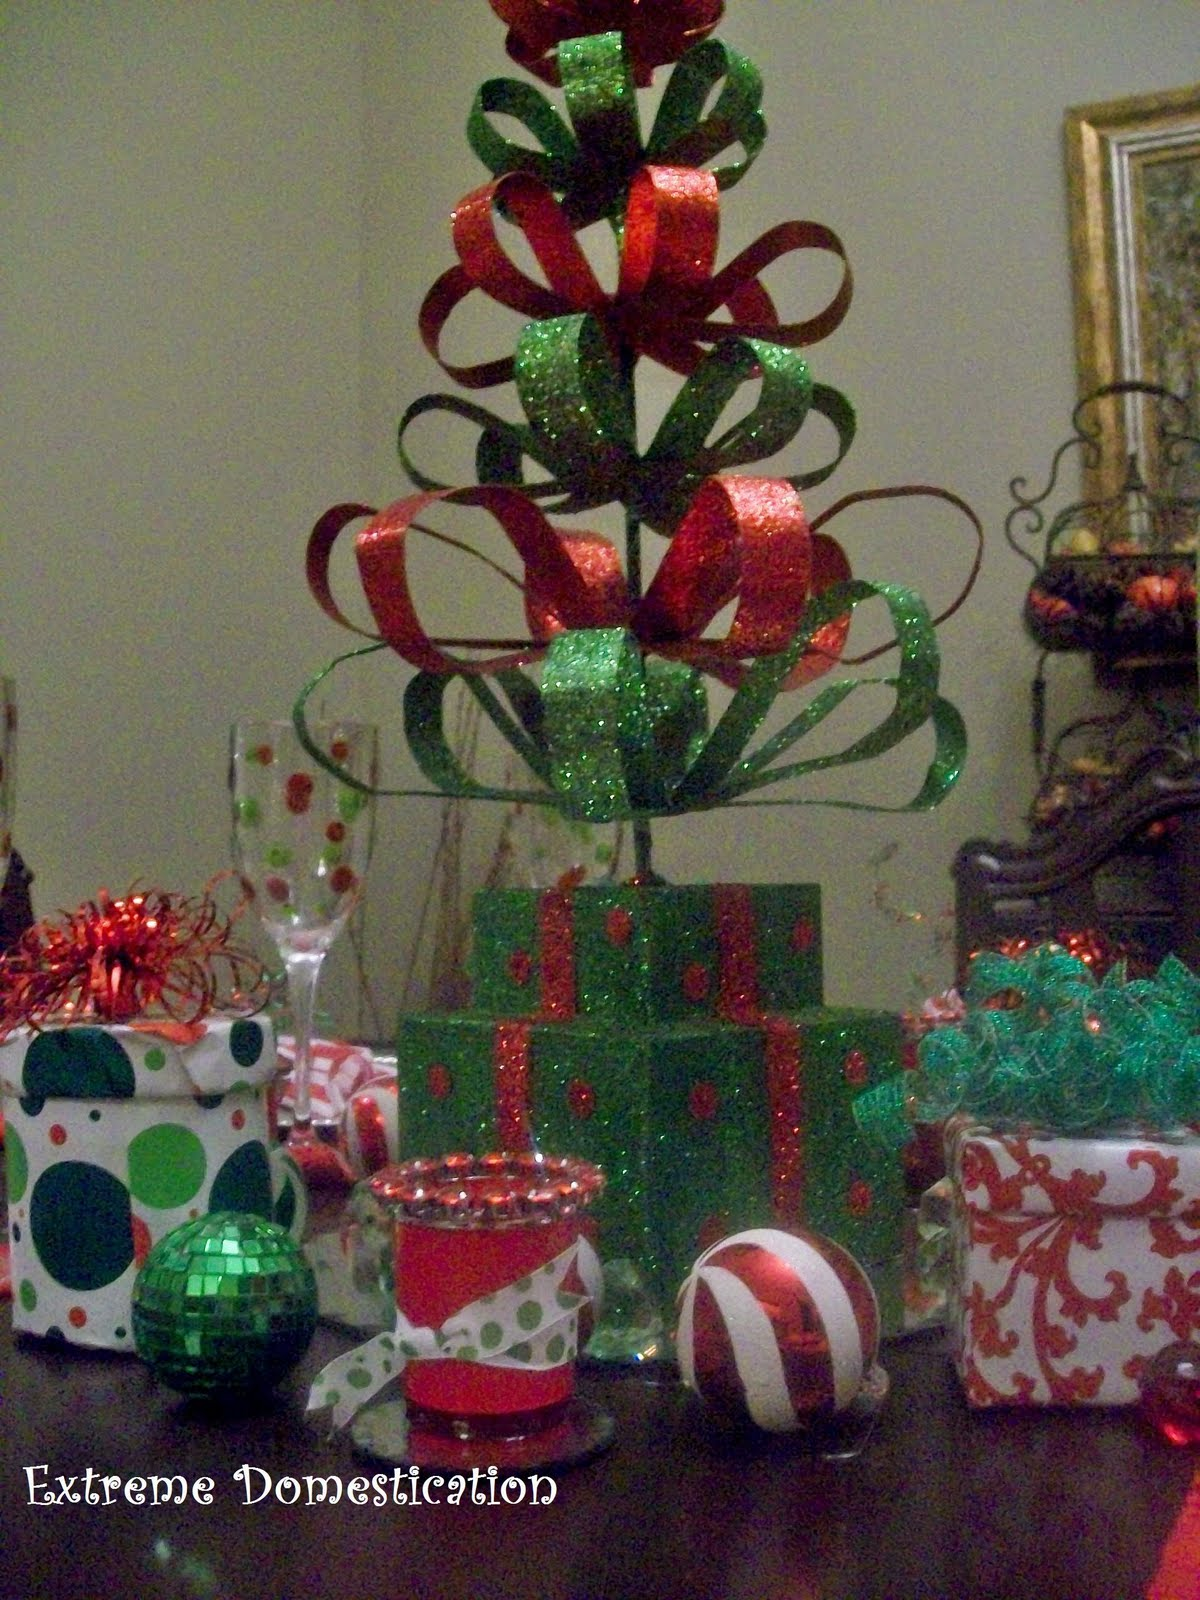 Extreme Domestication: Christmas Party Table Setting